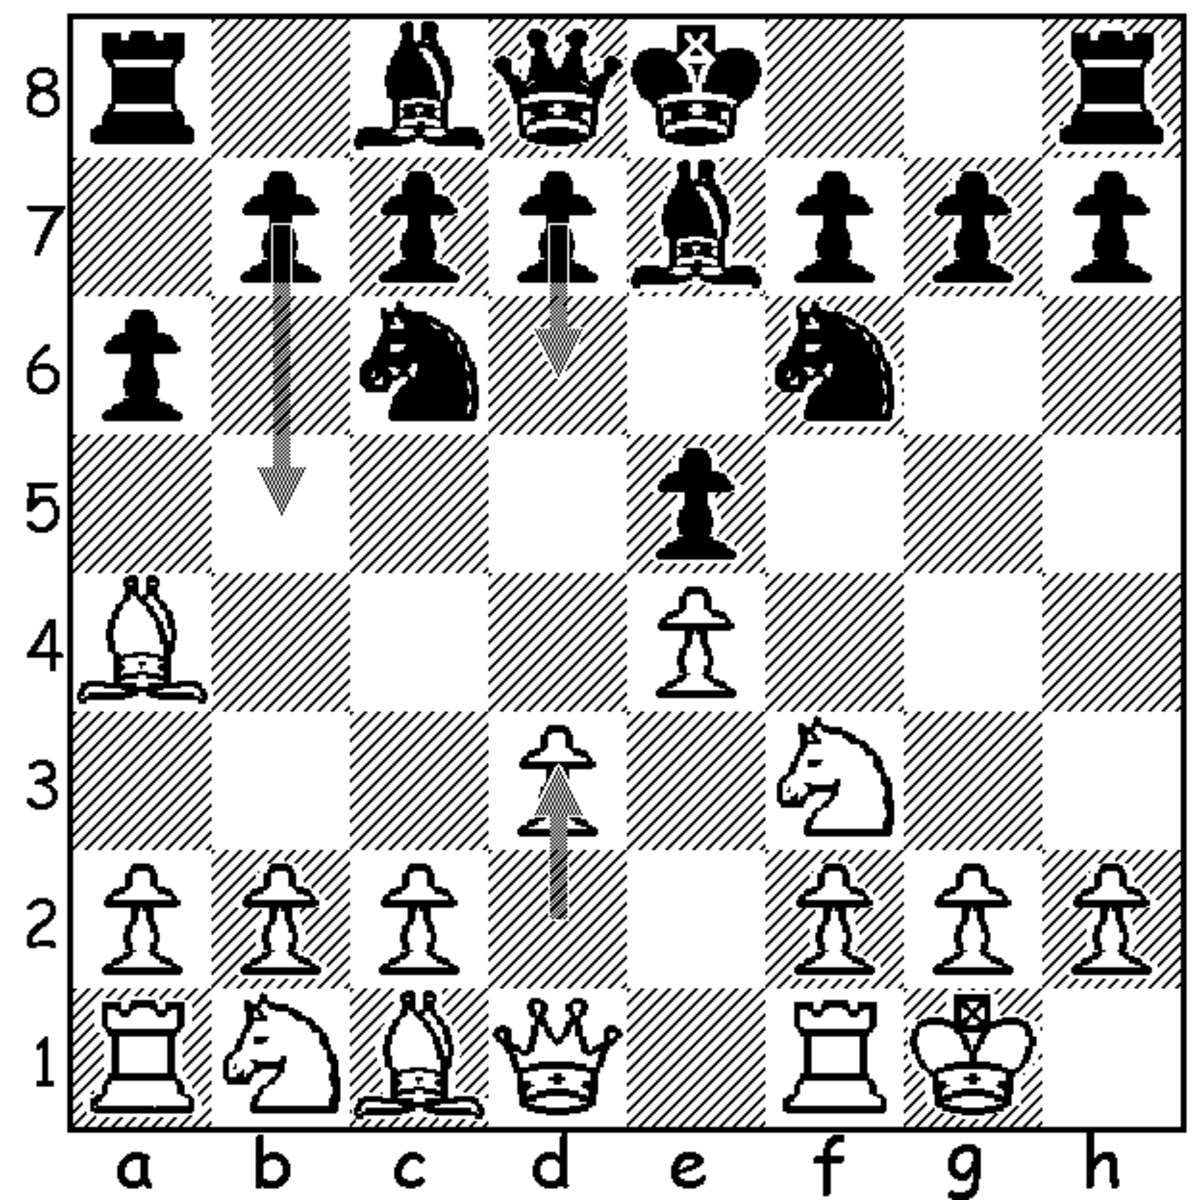 Chess Openings: Play Simply and Solidly as White in the Ruy Lopez with 6.d3 (The Martinez Variation)